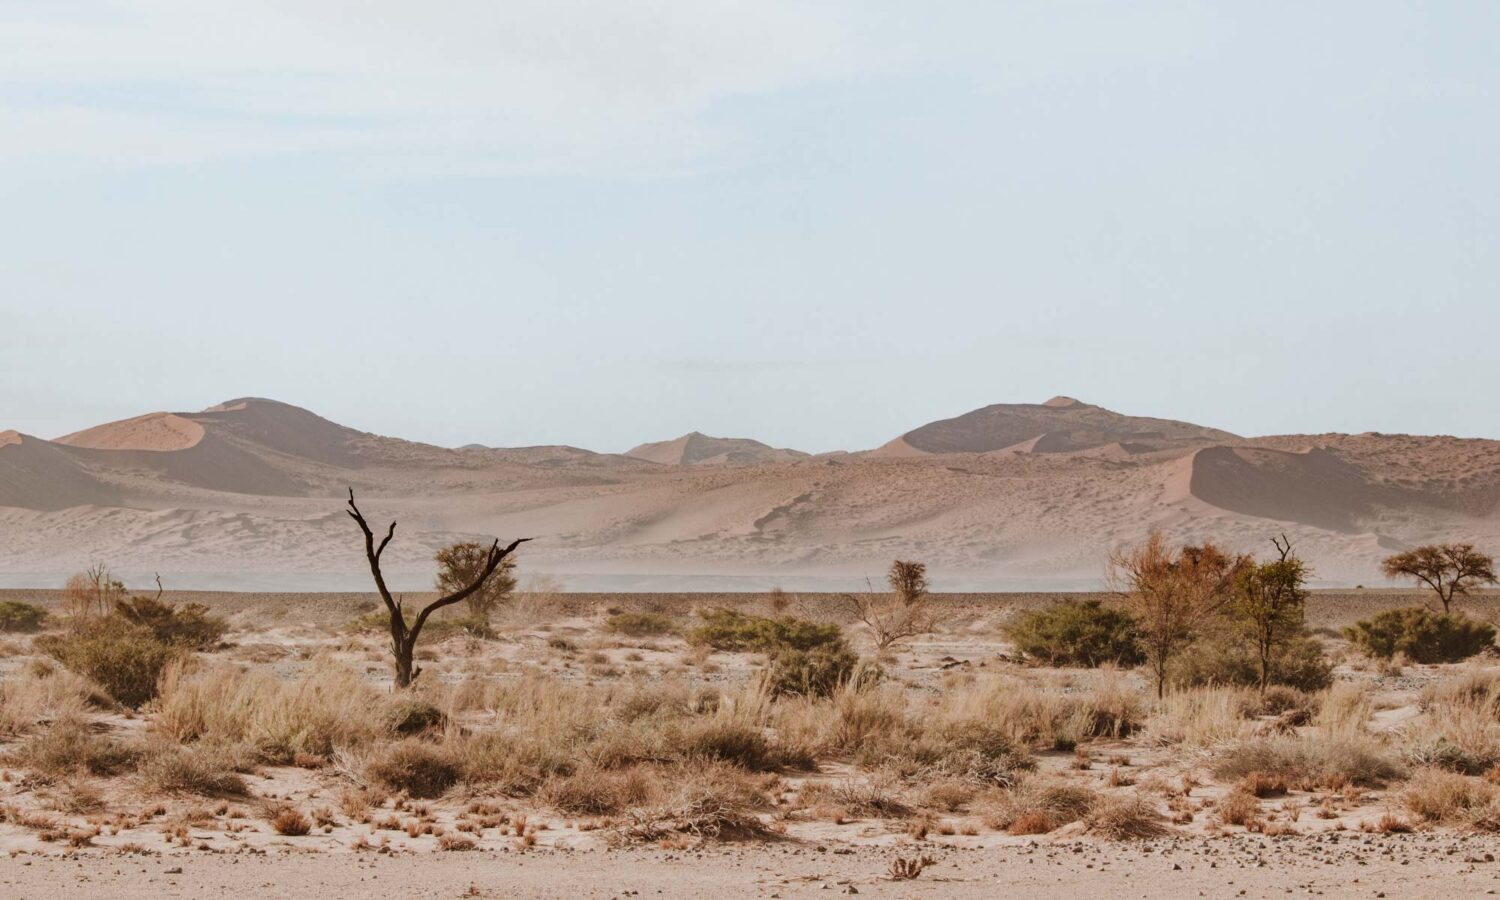 Gorgeous desert views on our two days in Sossusvlei.